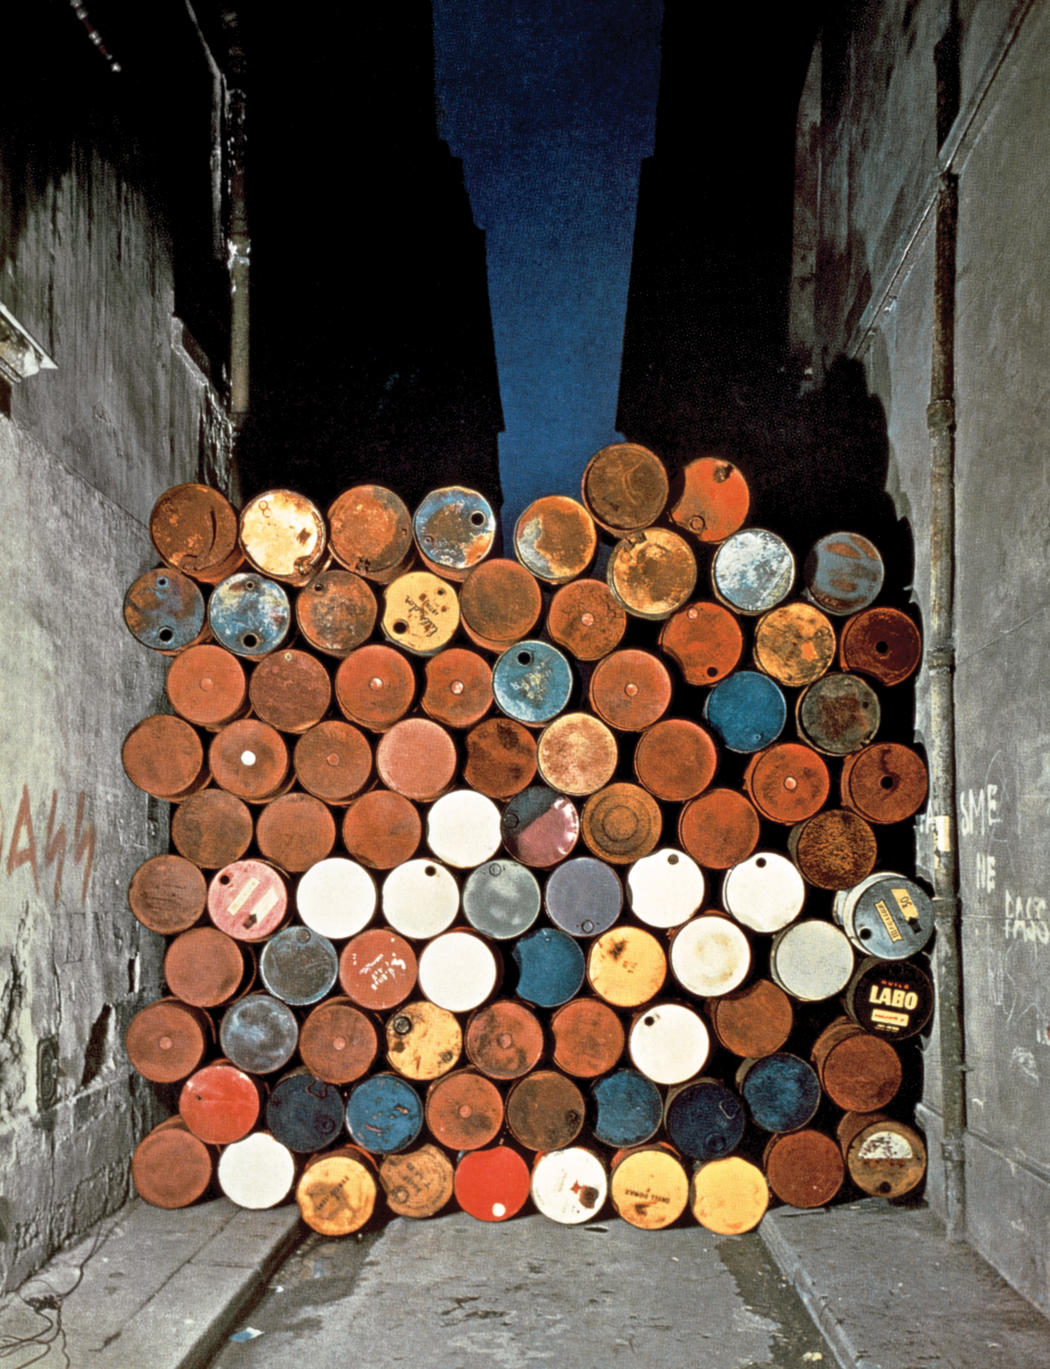 Christo and Jeanne Claude Wall of Oil Barrels   The Iron Curtain, Rue Visconti, Paris, 1961-62. Photo  Jean-Dominique Lajoux  1962 Christo